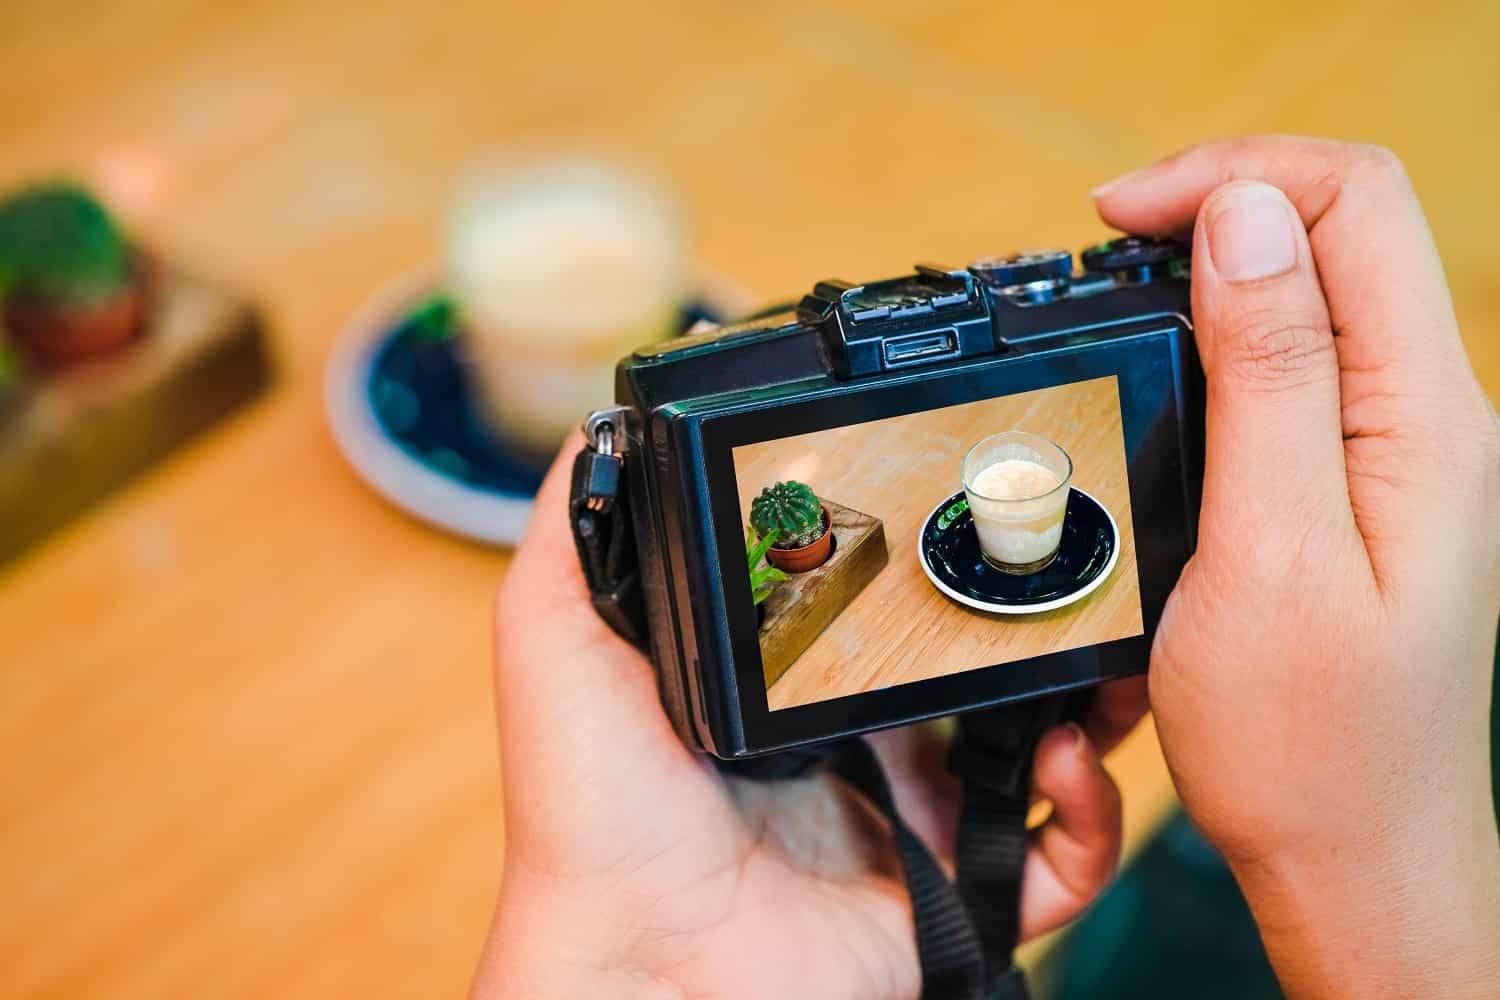 5 Easy Ways To Improve Amazon Product Photography